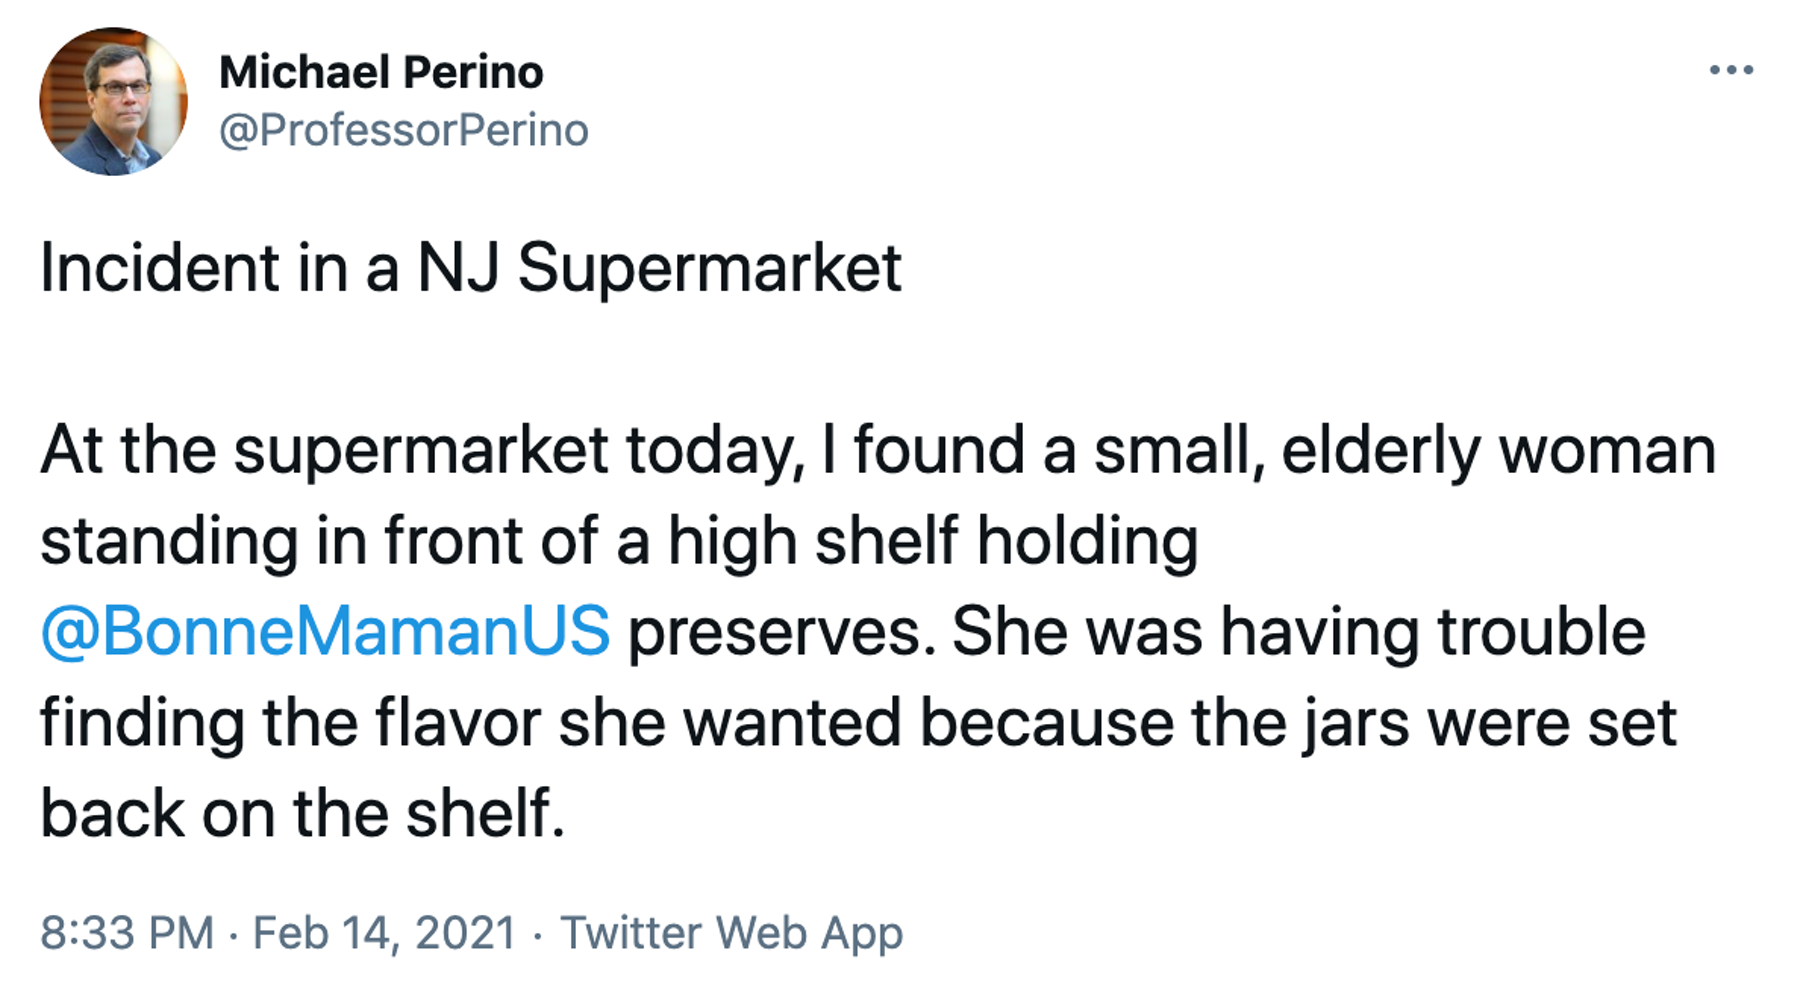 Incident in a NJ Supermarket At the supermarket today, I found a small, elderly woman standing in front of a high shelf holding @BonneMamanUS preserves. She was having trouble finding the flavor she wanted because the jars were set back on the shelf.